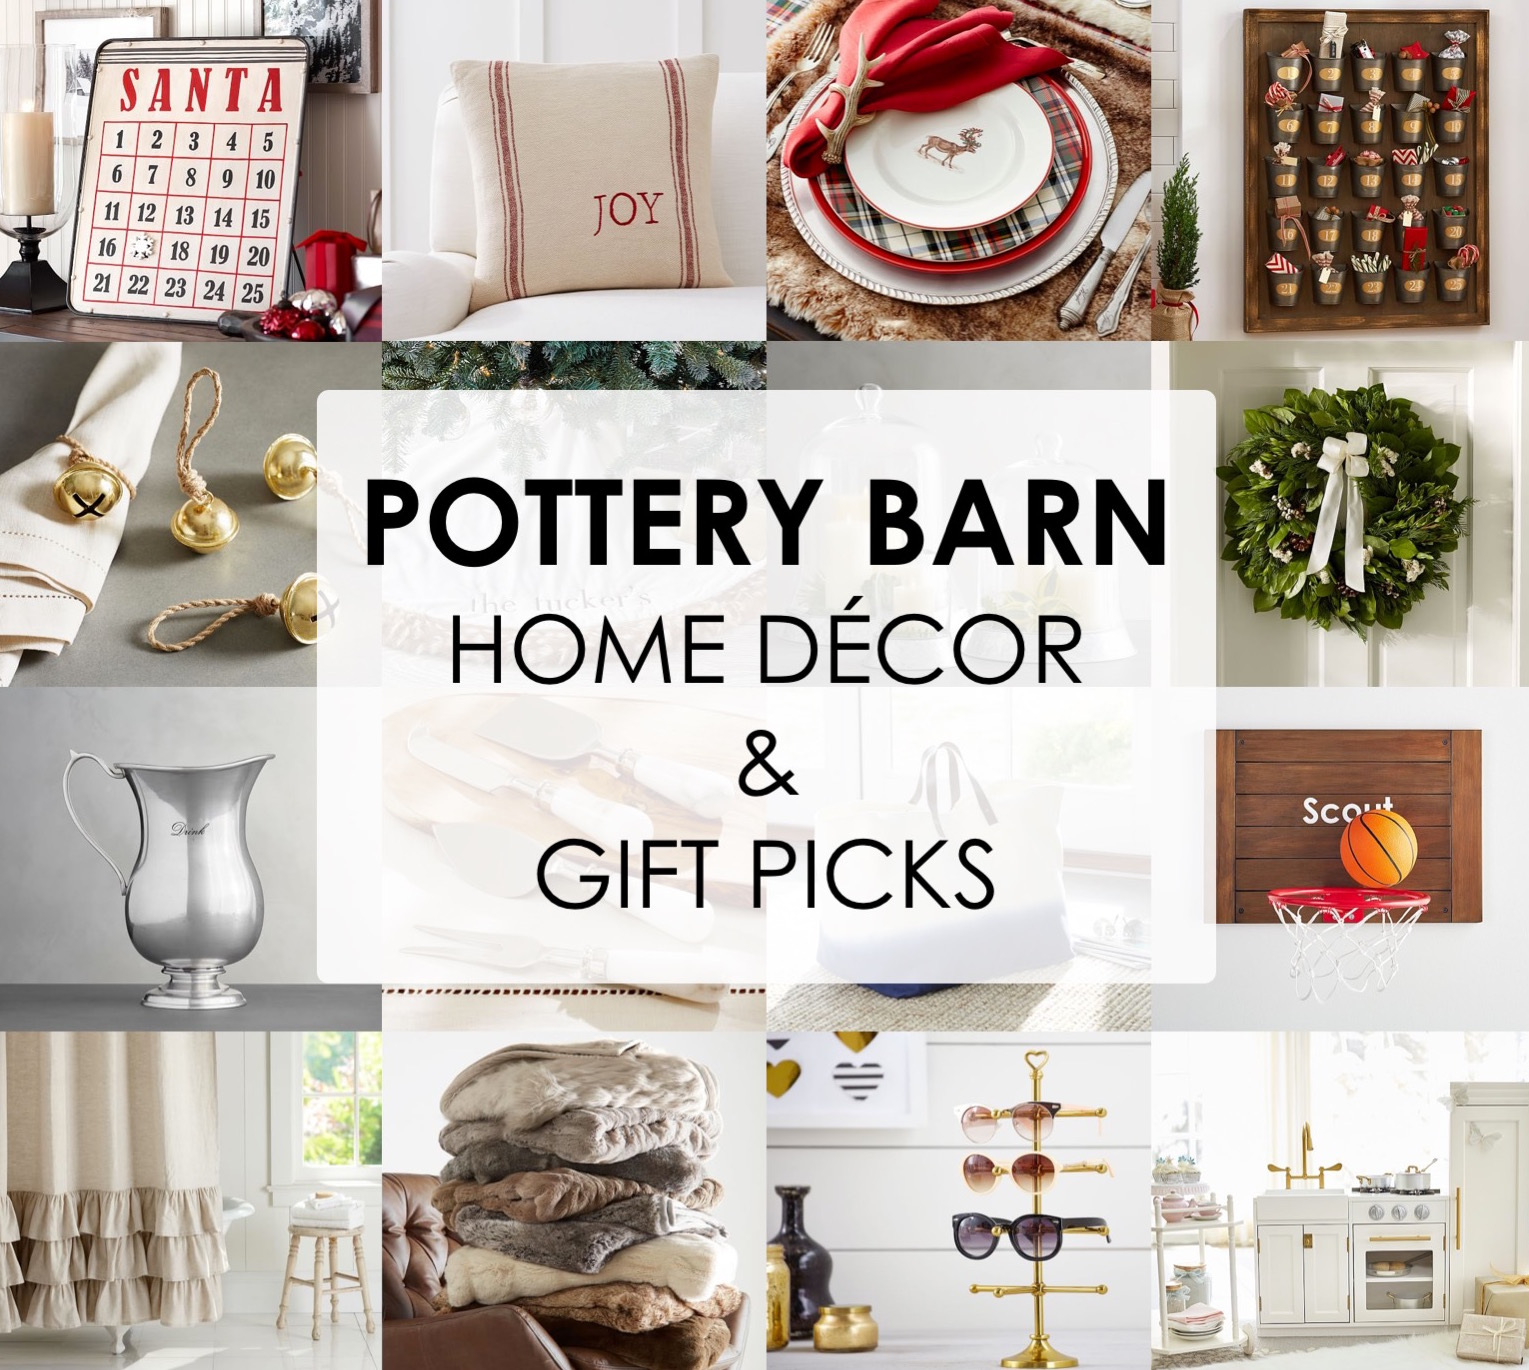 Holiday Decor & Gift Ideas: Pottery Barn Edition: All My